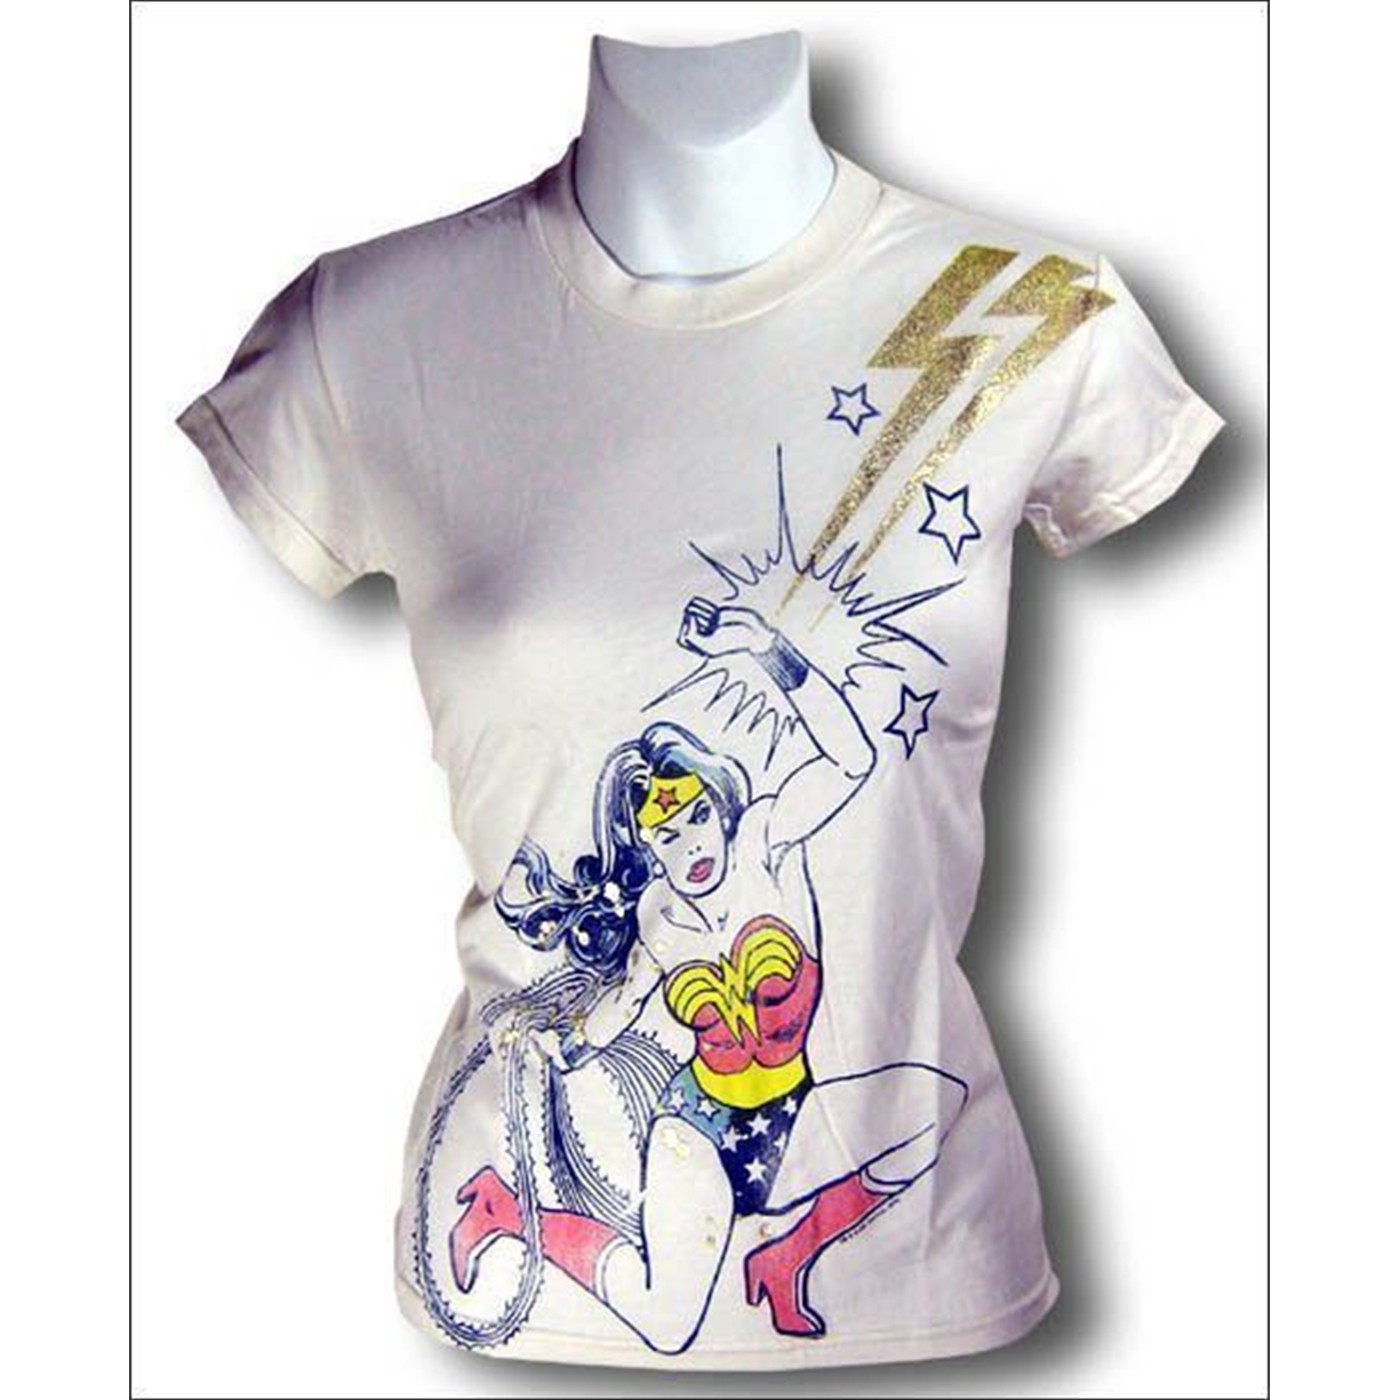 Wonder Woman Foil Youth Junkfood T-Shirt